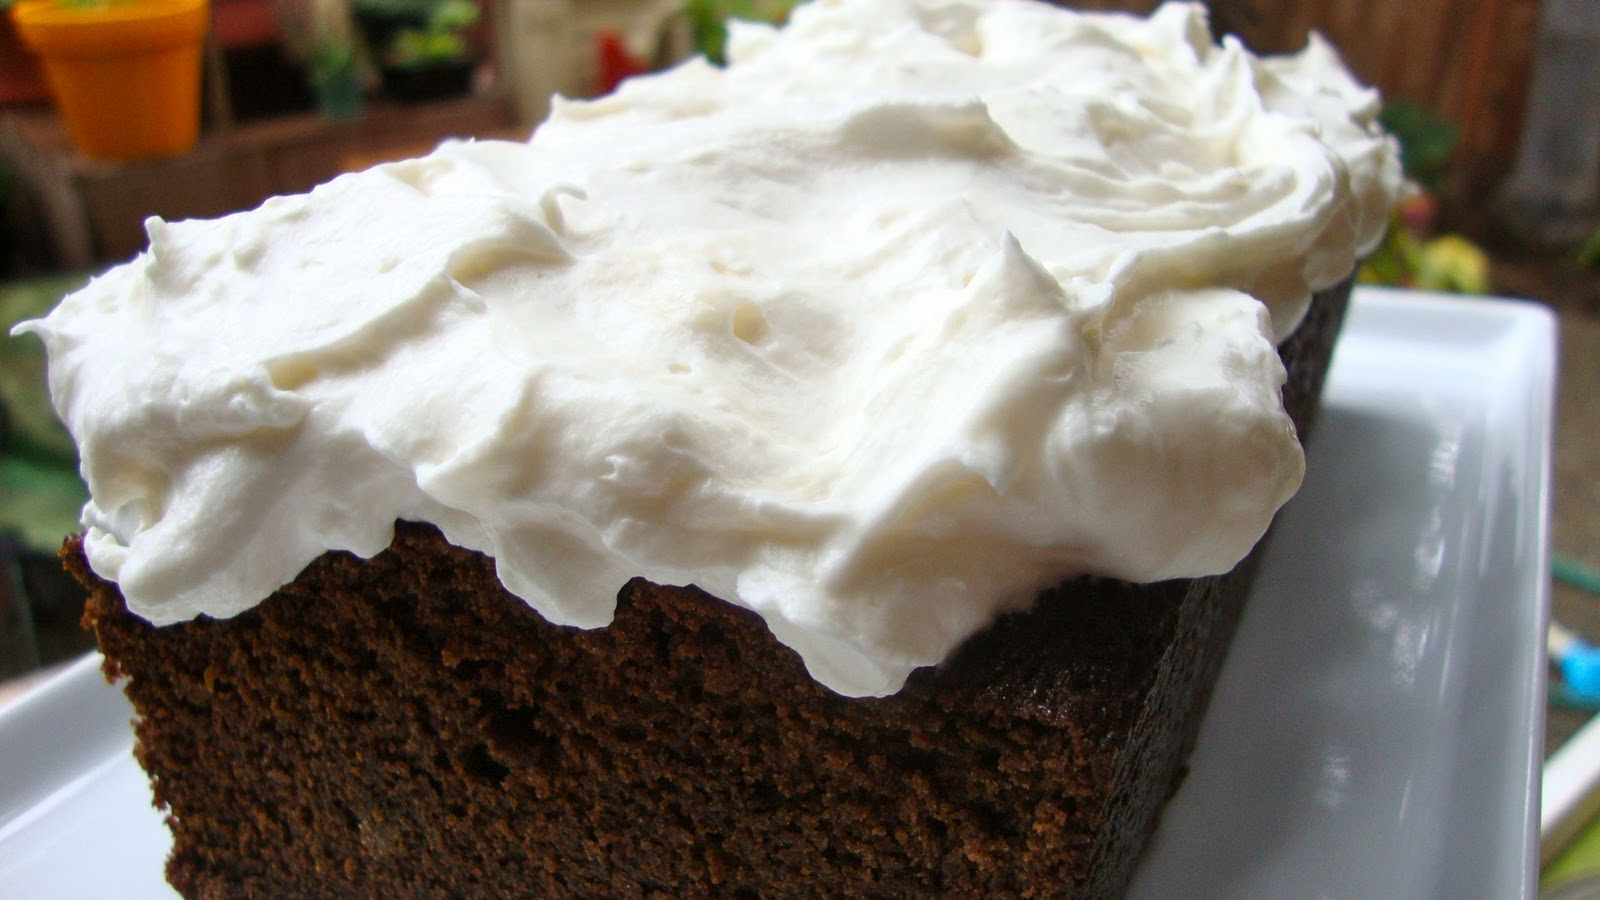 Indulge: Gingerbread with Whipped Cream Cheese Frosting